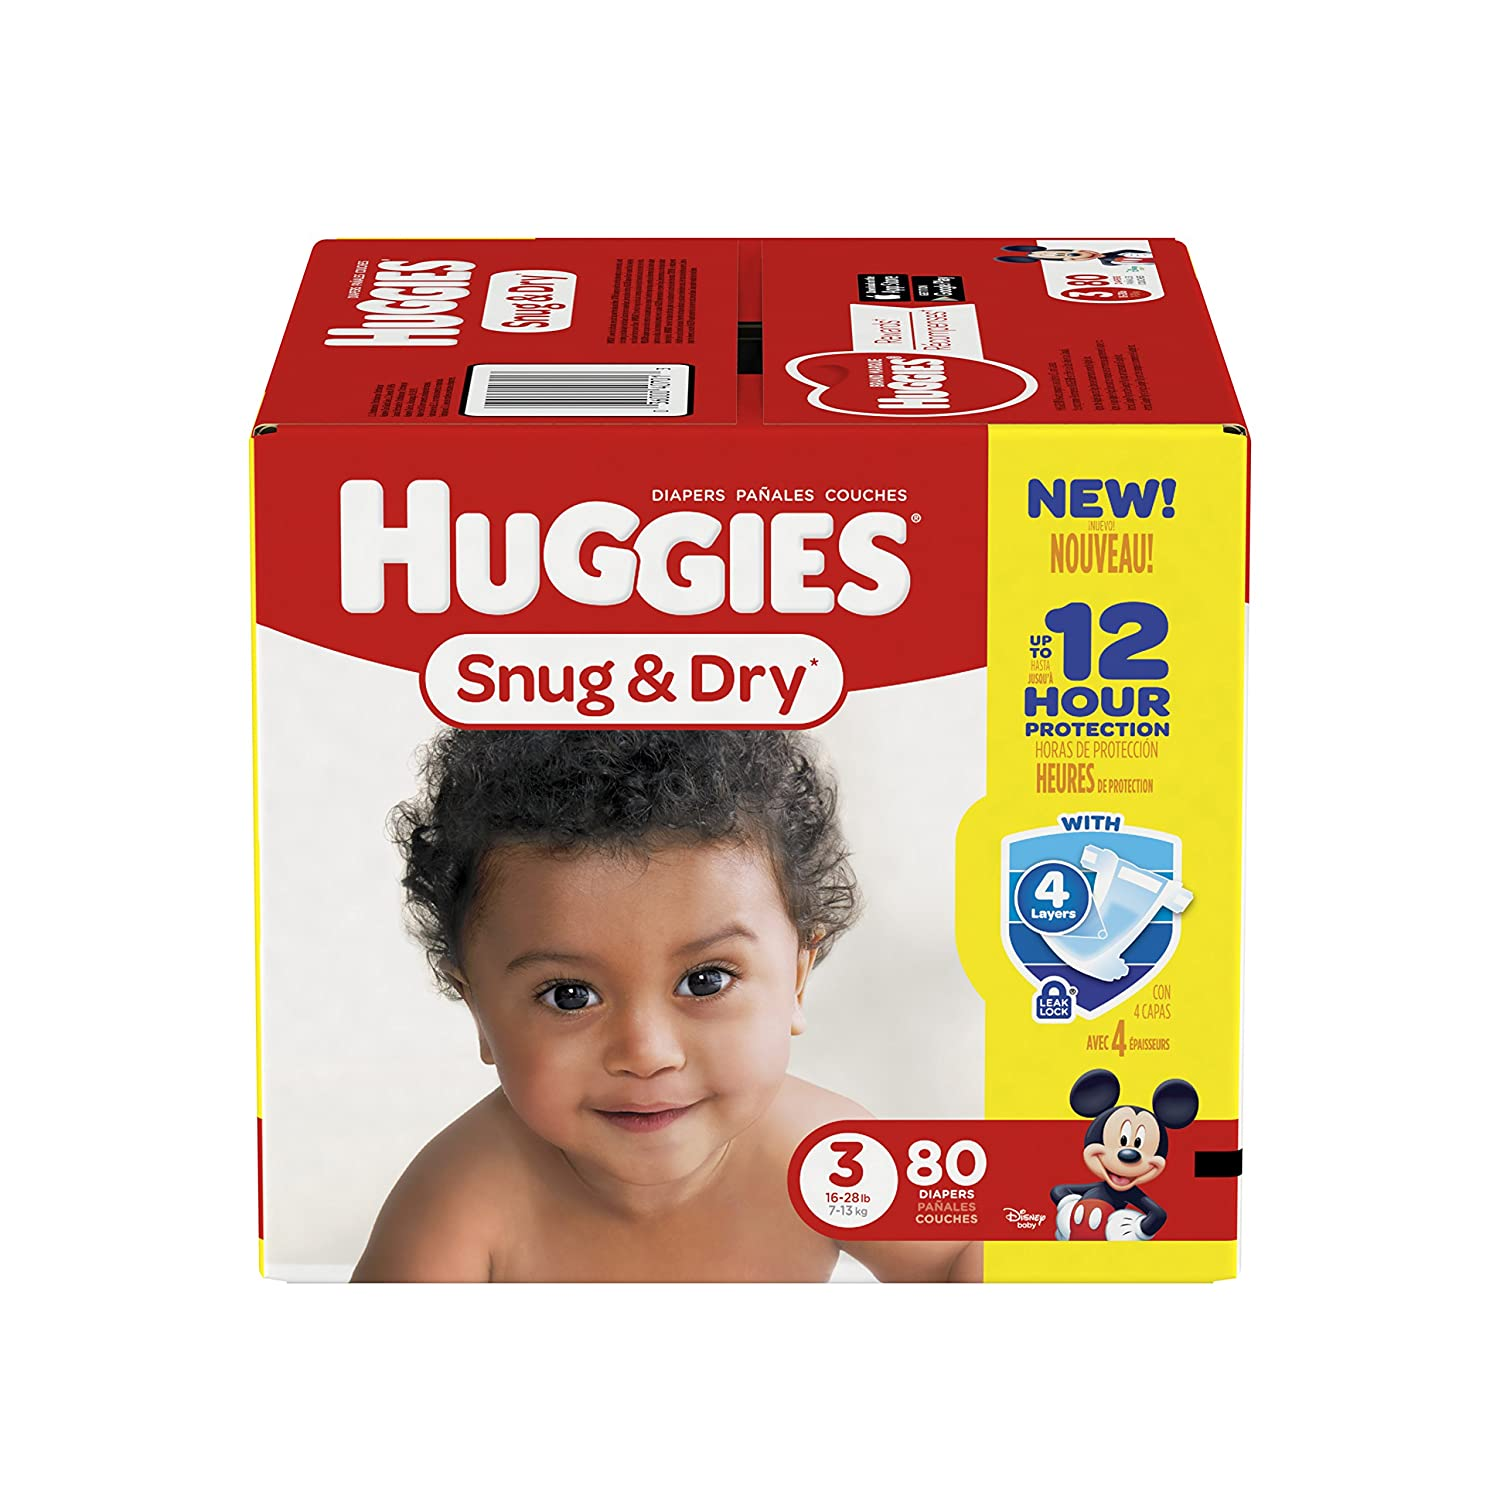 Amazon.com: HUGGIES Snug & Dry Diapers, Size 3, 80 Count (Packaging May Vary): Health & Personal Care